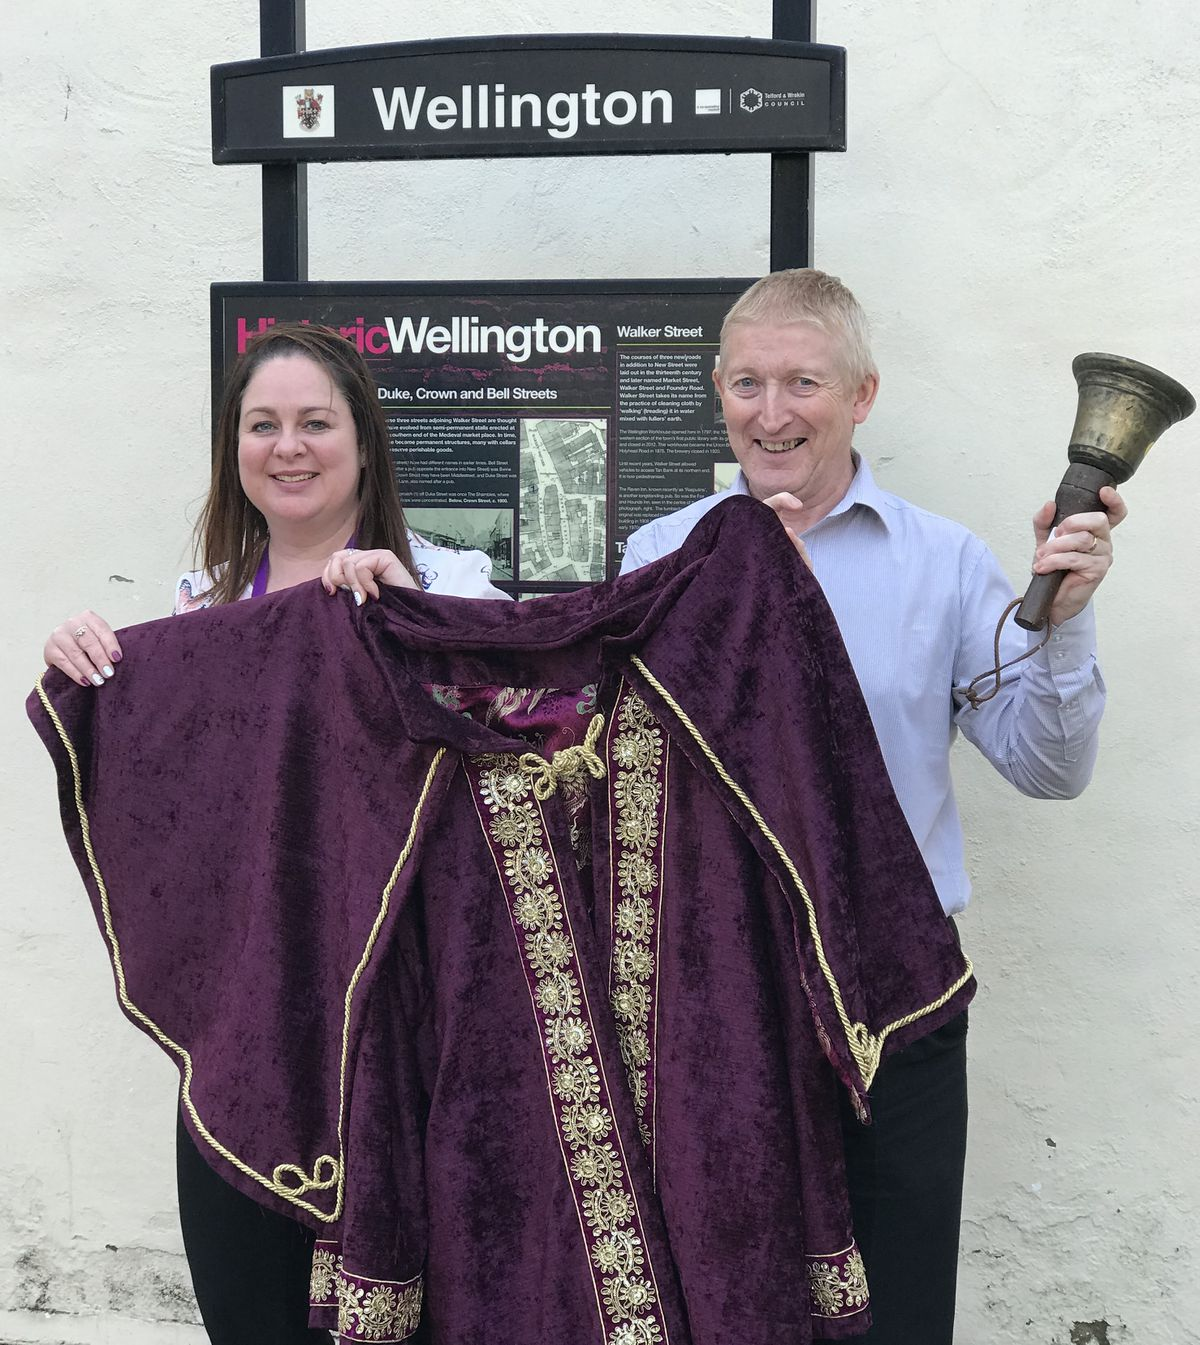 Caroline Mulvihill and Andrew Roberts of Wellington Town Council with the town crier robe and bell